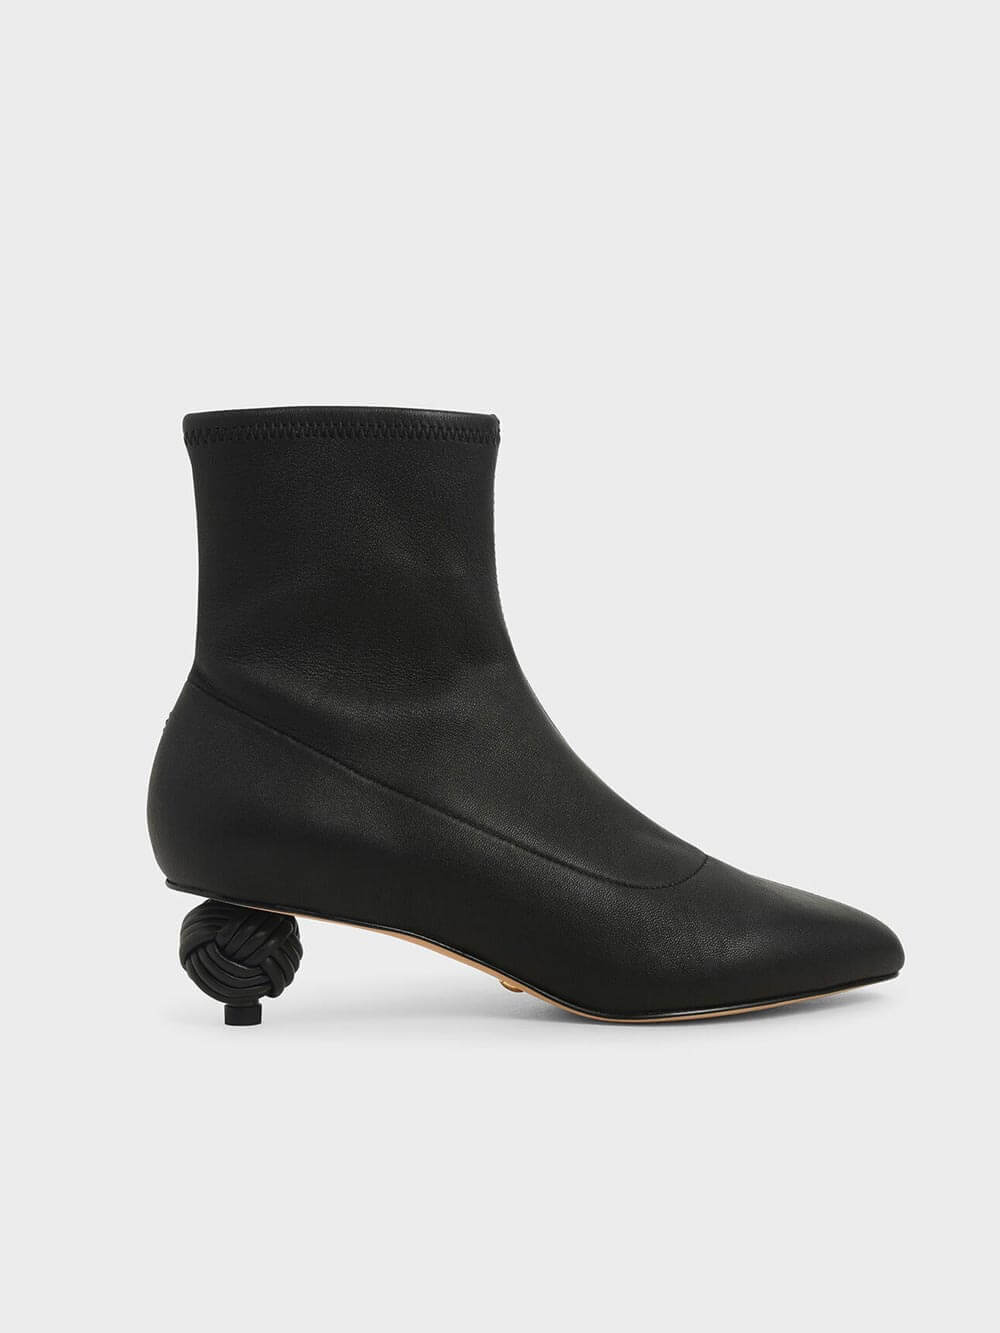 Leather Sculptural Heel Ankle Boots